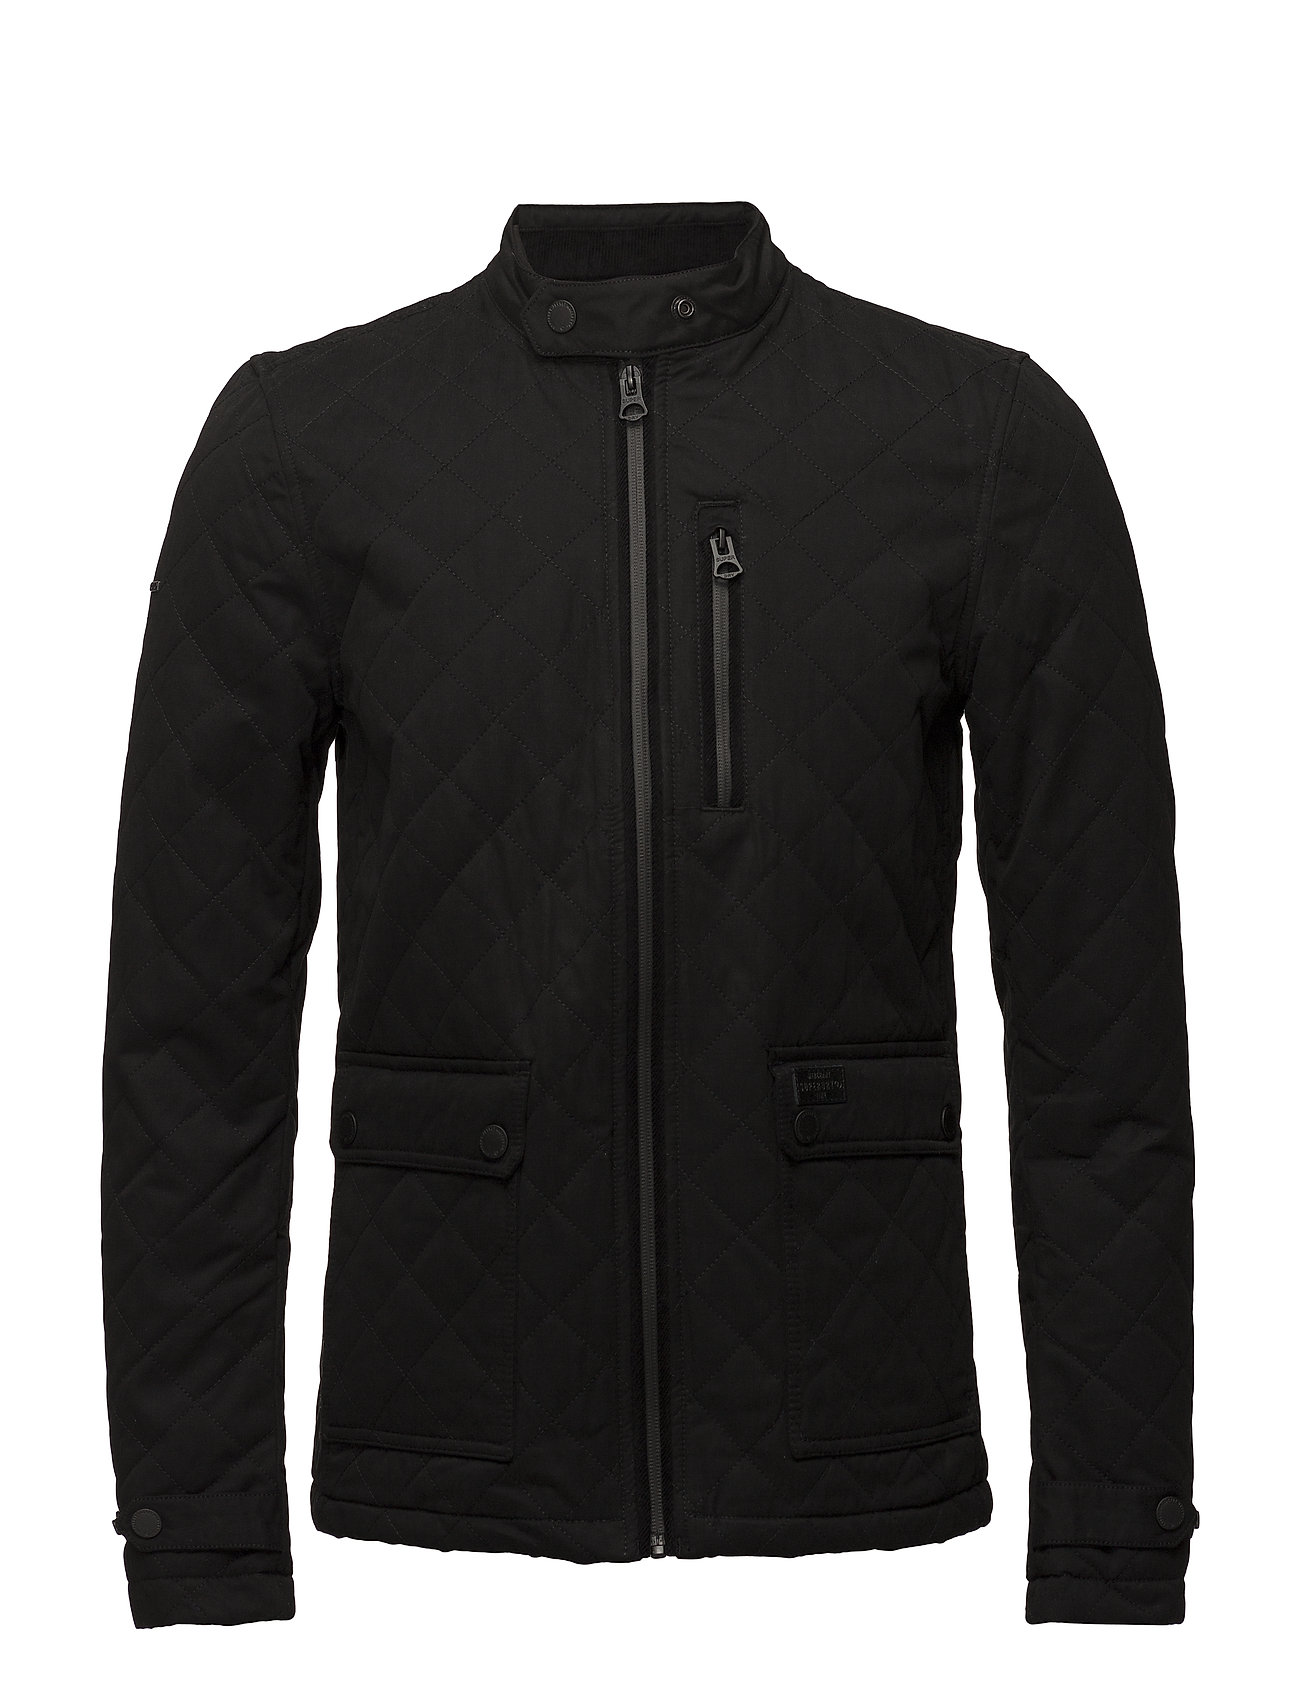 Superdry CITY MICROFIBRE QUILT JACKET - BLACK